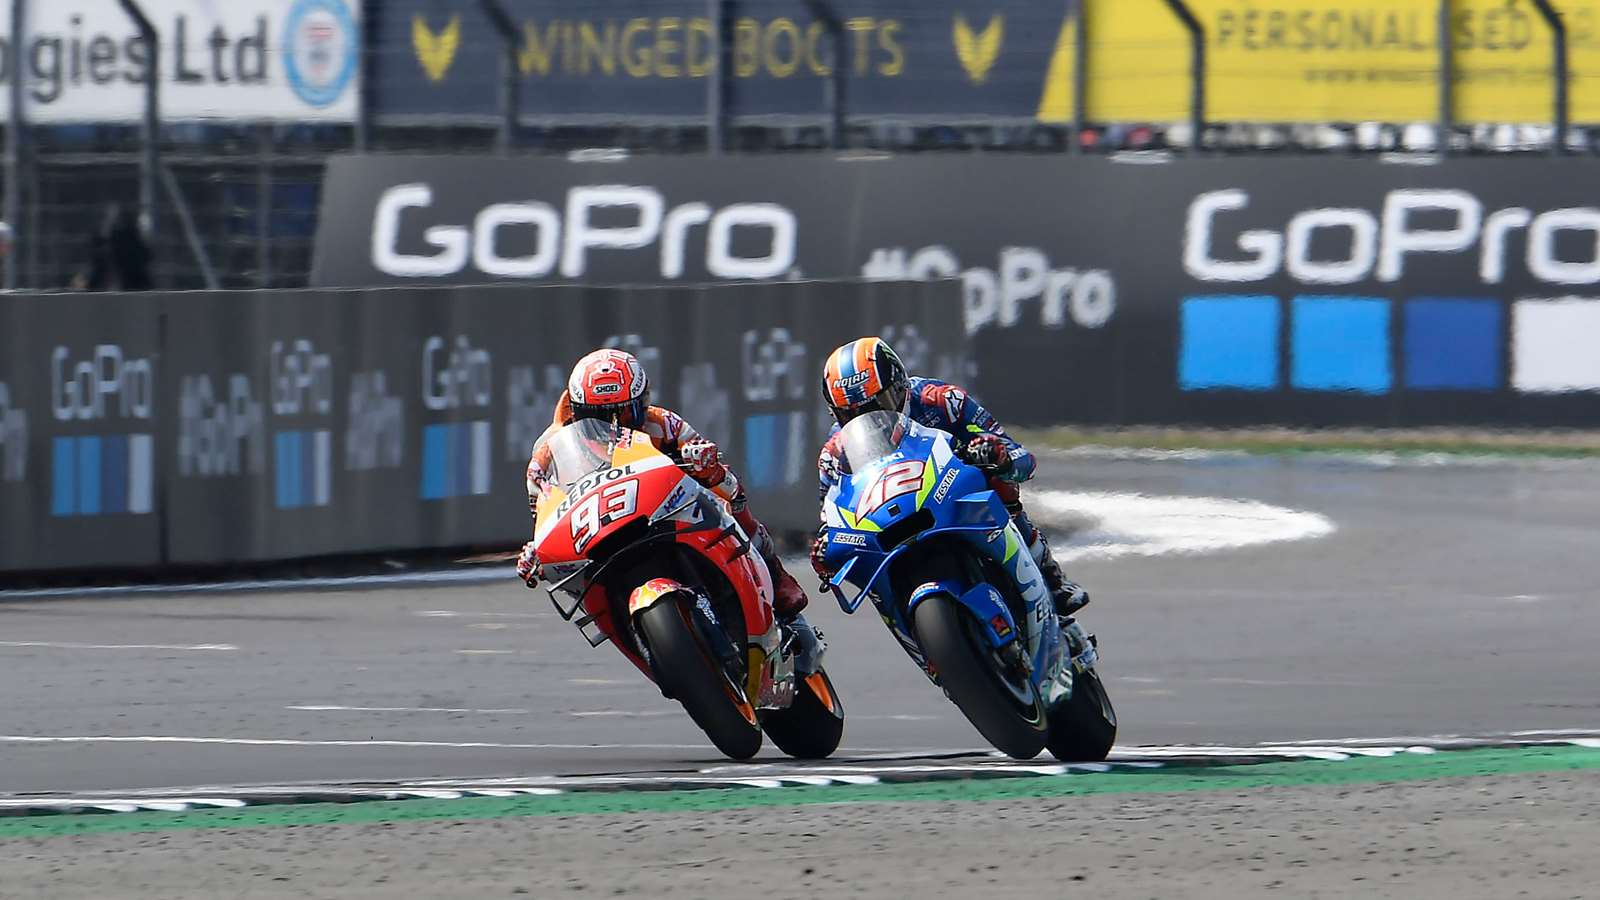 Will Motogp Stay The Same After 2020 Grr